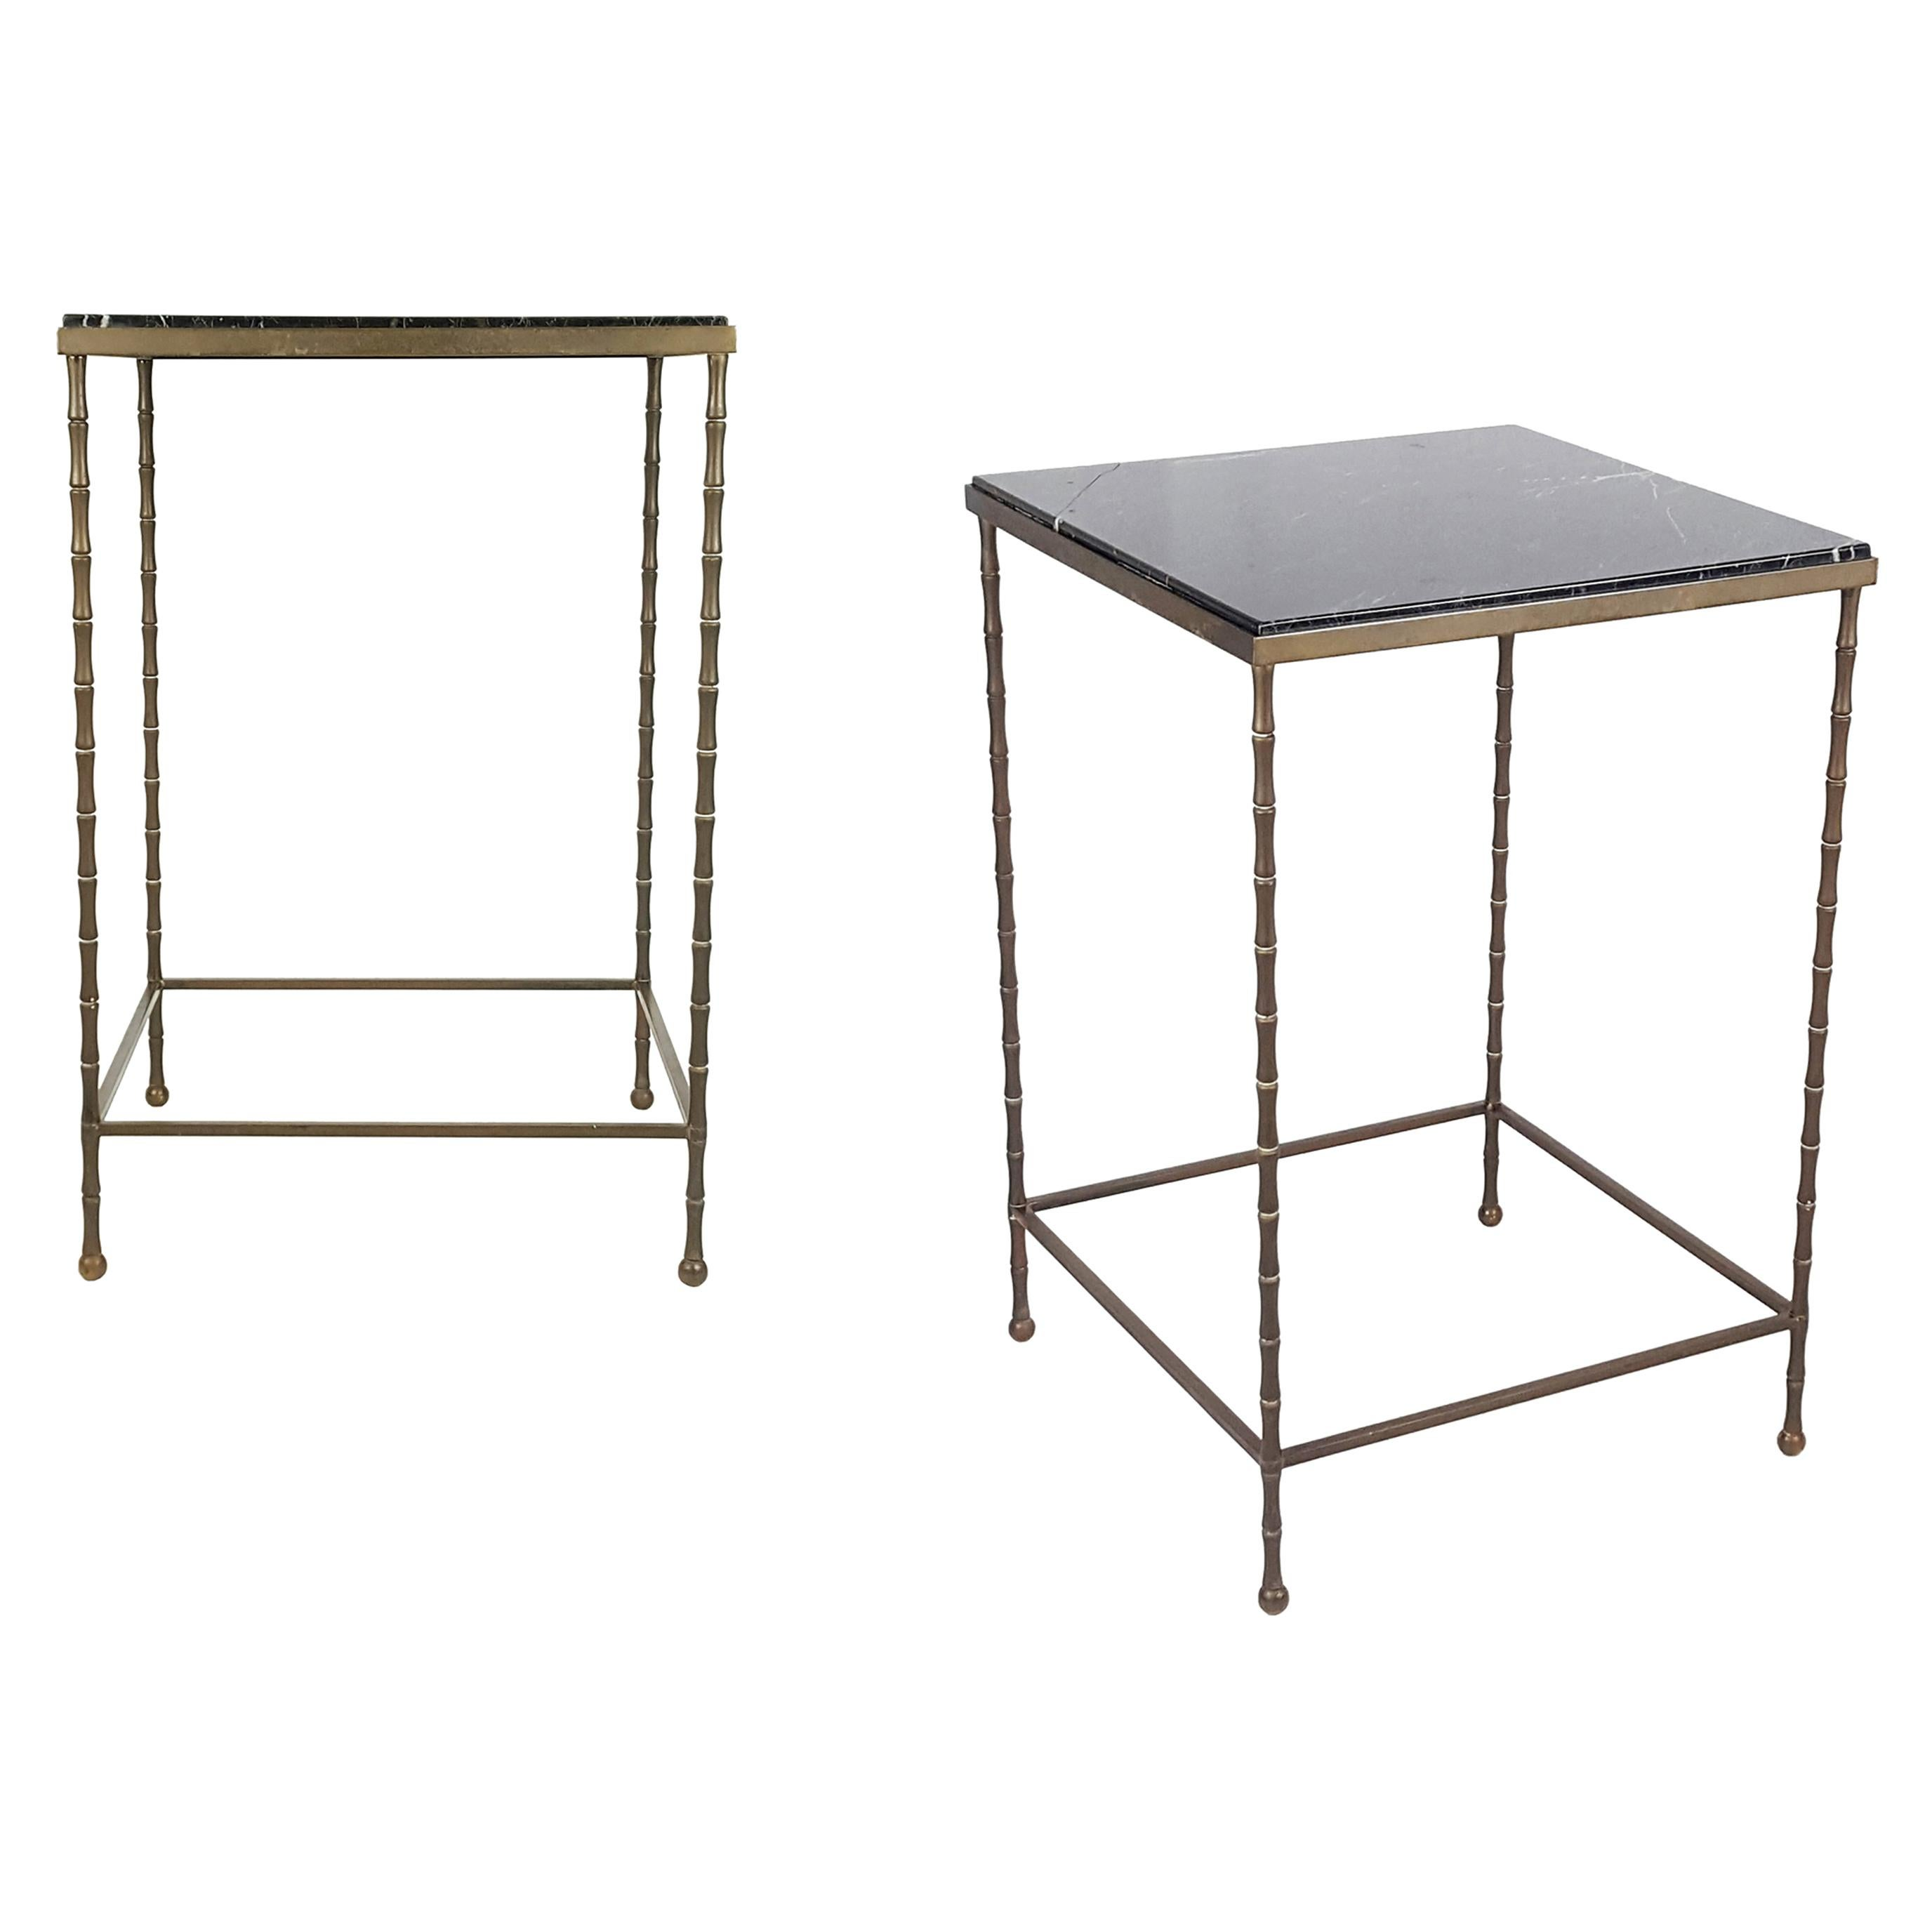 Pair of Black Marble Top & Brass Structure 1950s Side Low Tables or Nightstands